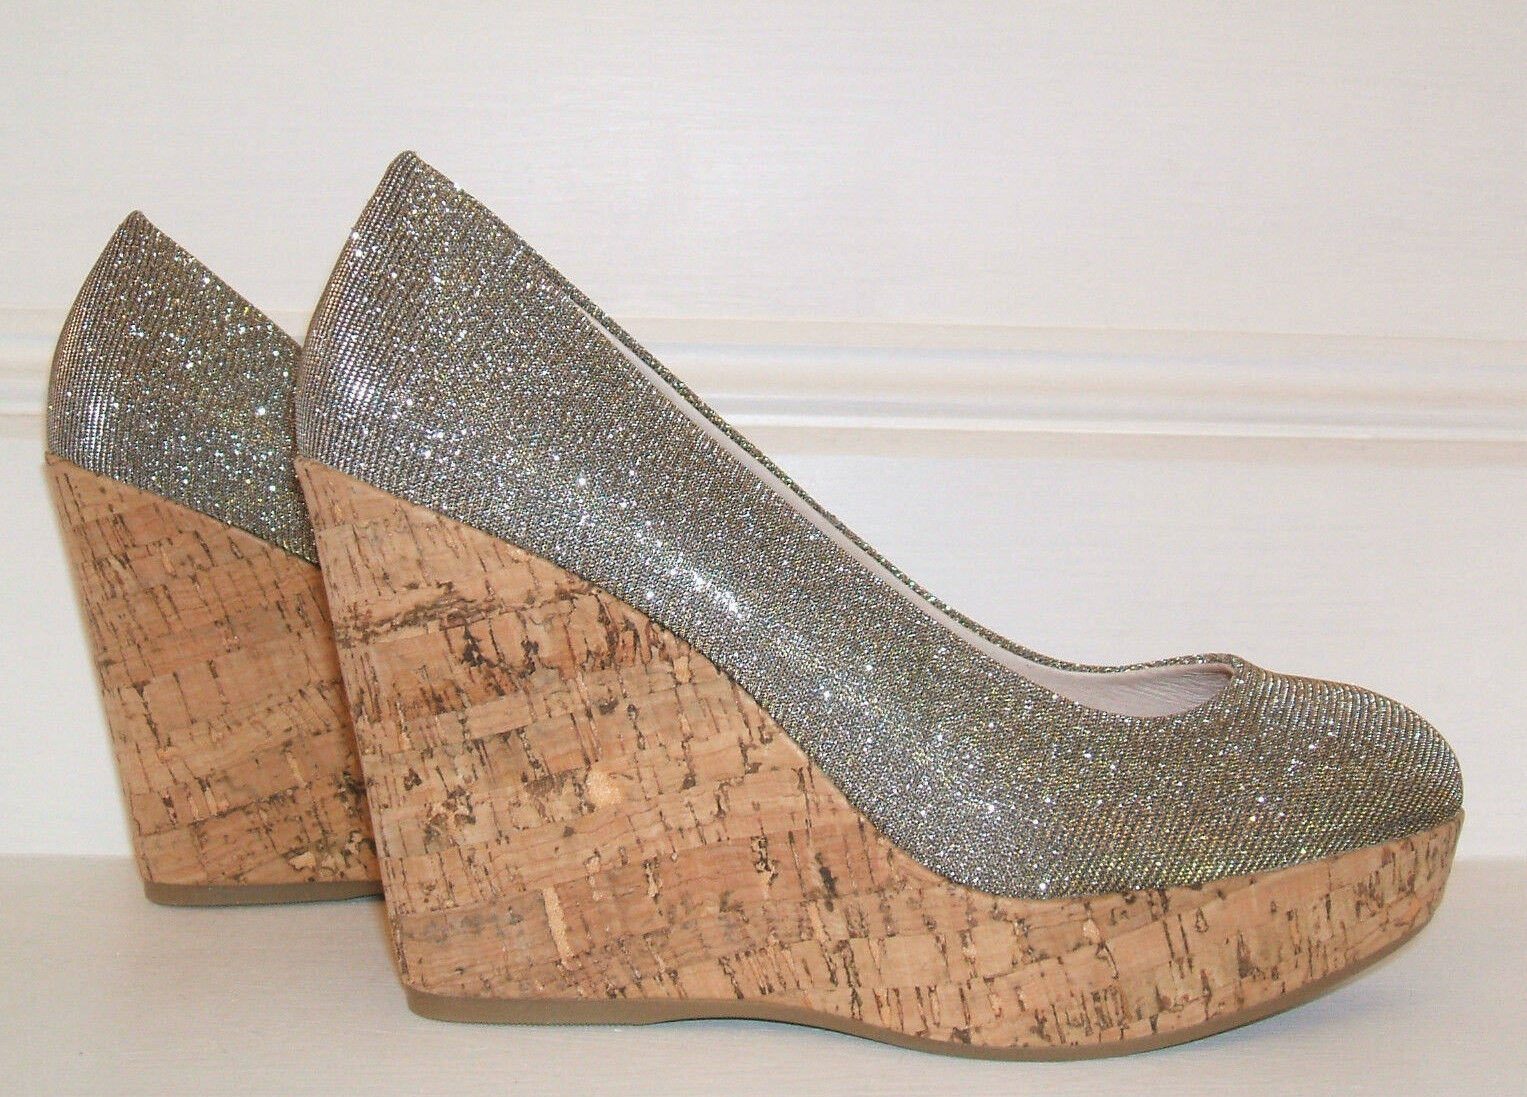 NEW  CARVELA KG SIZE 3 36 ATTEND PEWTER SILVER SANDALS CORK WEDGE COURT Schuhe SANDALS SILVER 023f29